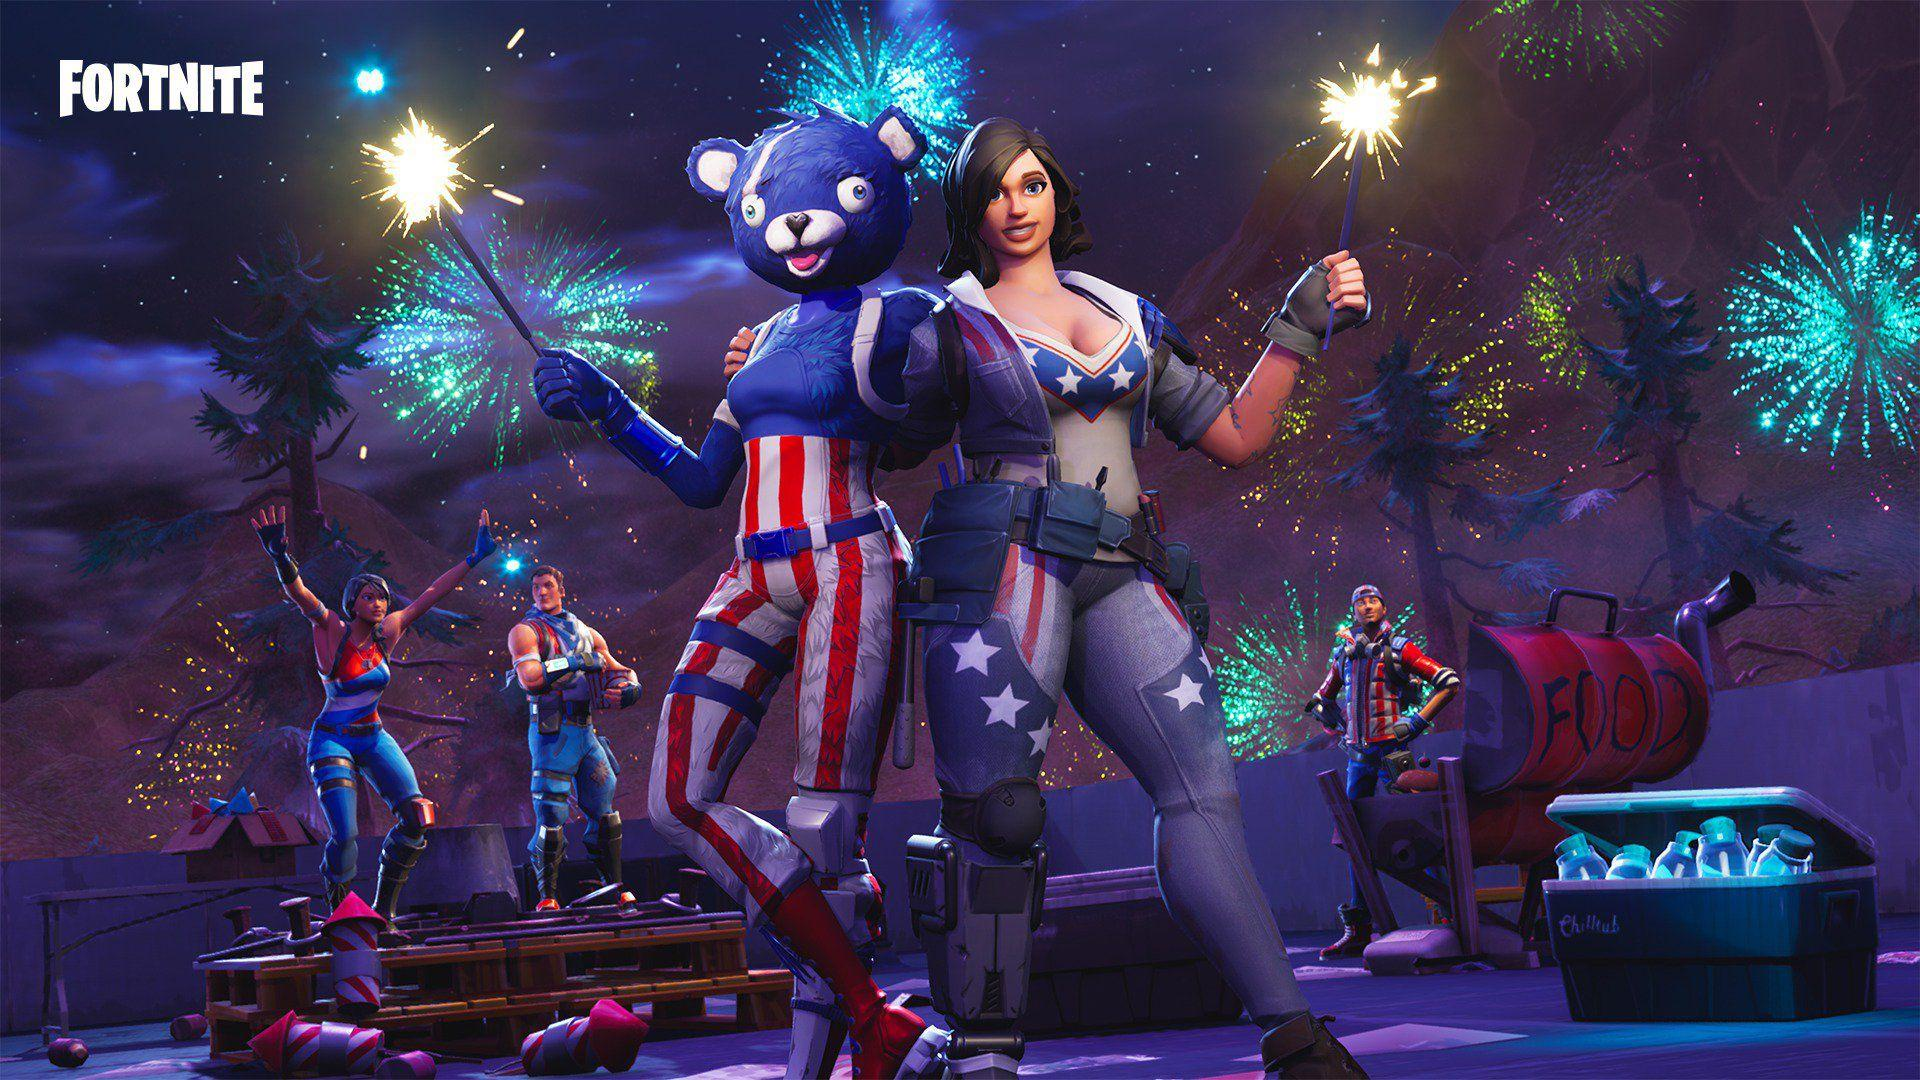 Top 15 Best Fortnite Wallpapers That Need to be Your New Backgrounds